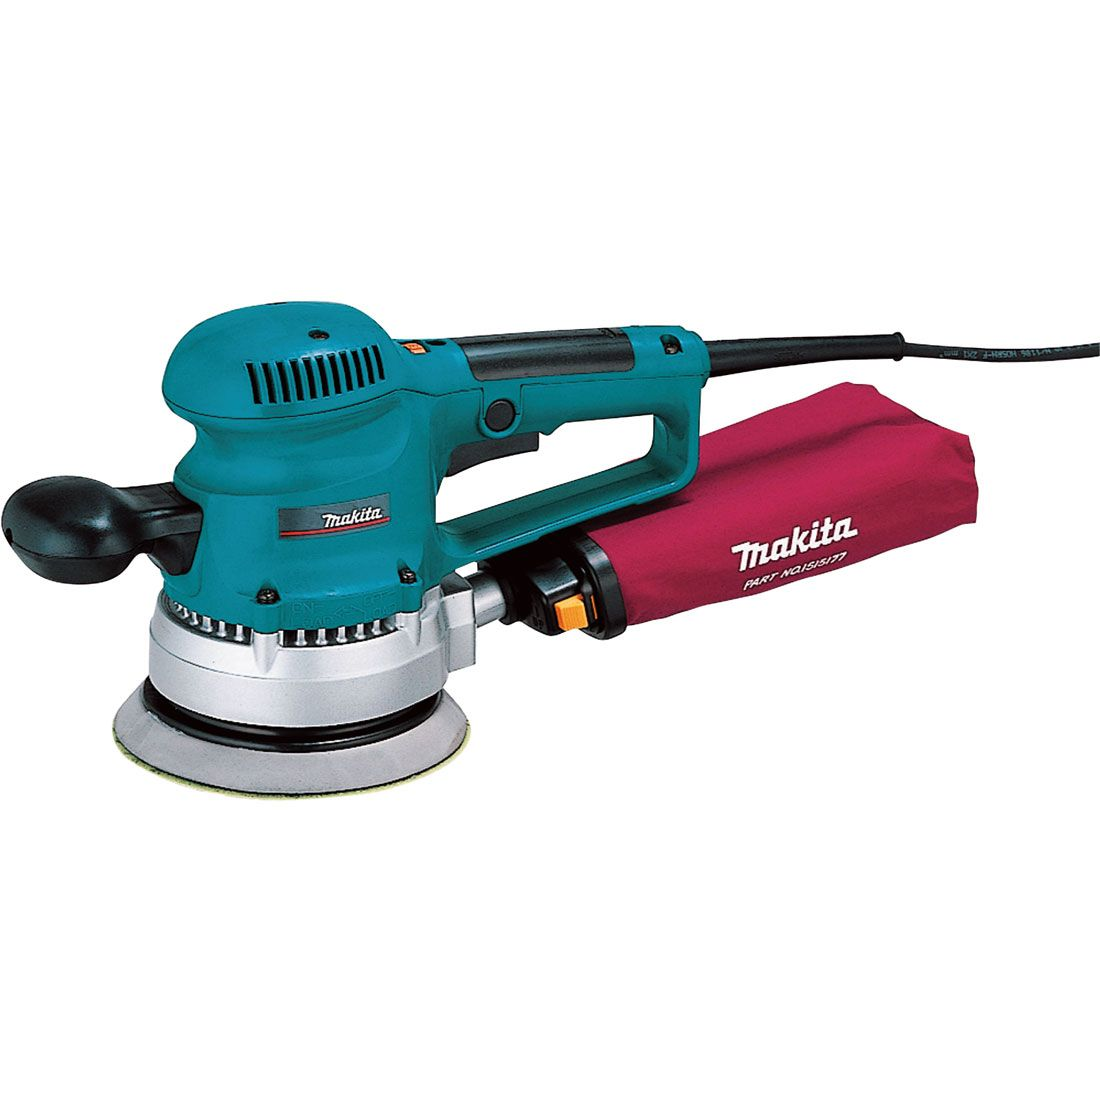 Makita 150mm Random Orbit Sander 240v MAKBO6030 | This gives a variety of gripping positions to relieve fatigue. | toolforce.ie